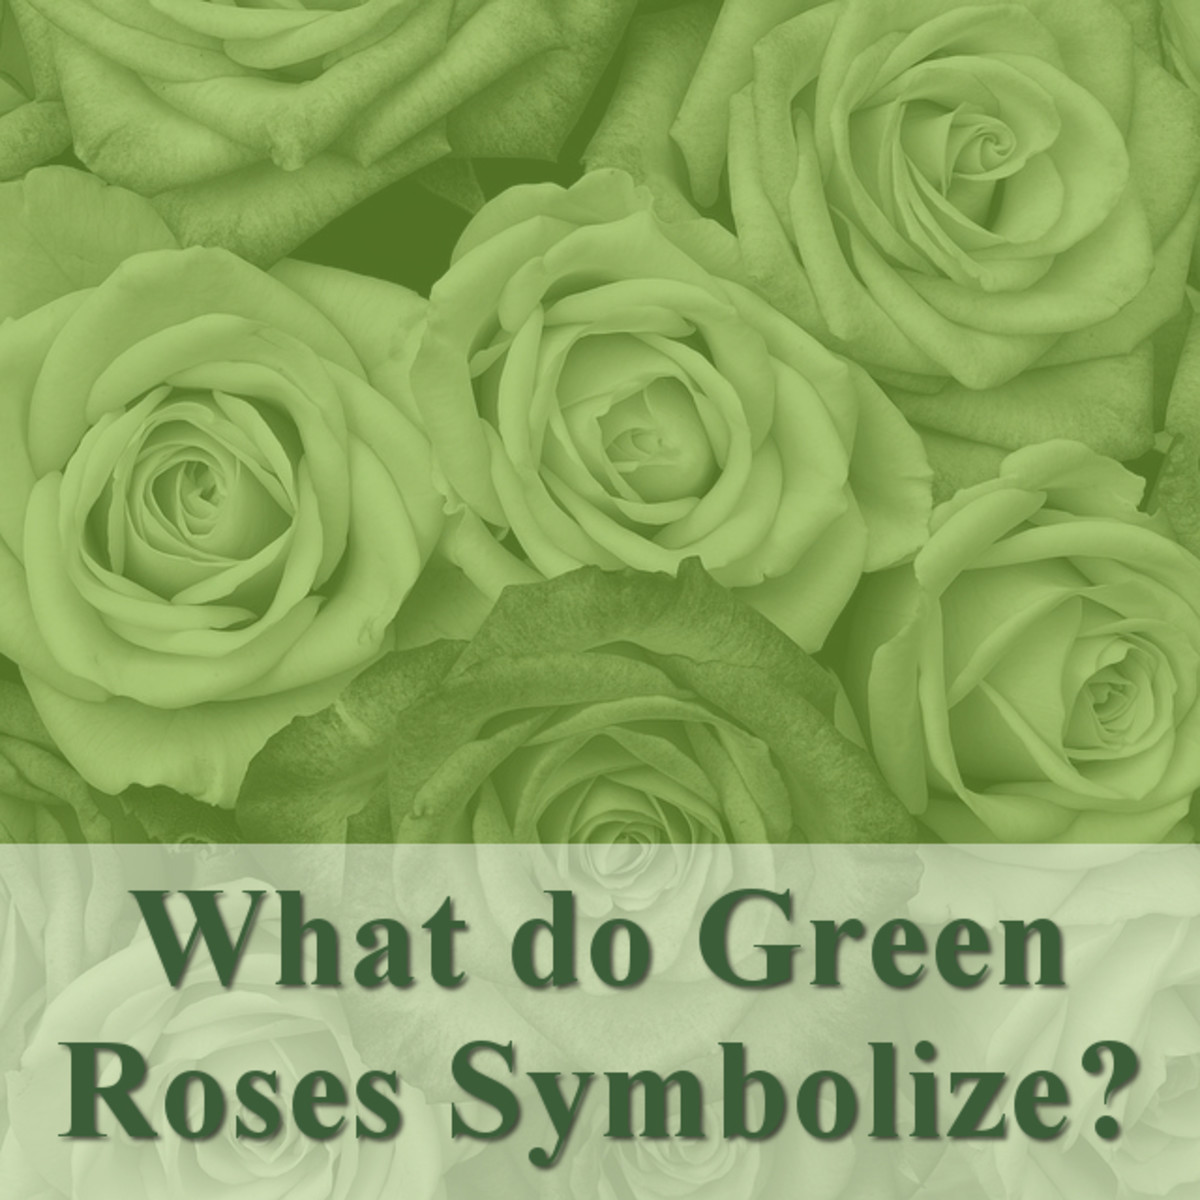 What do green roses symbolize?